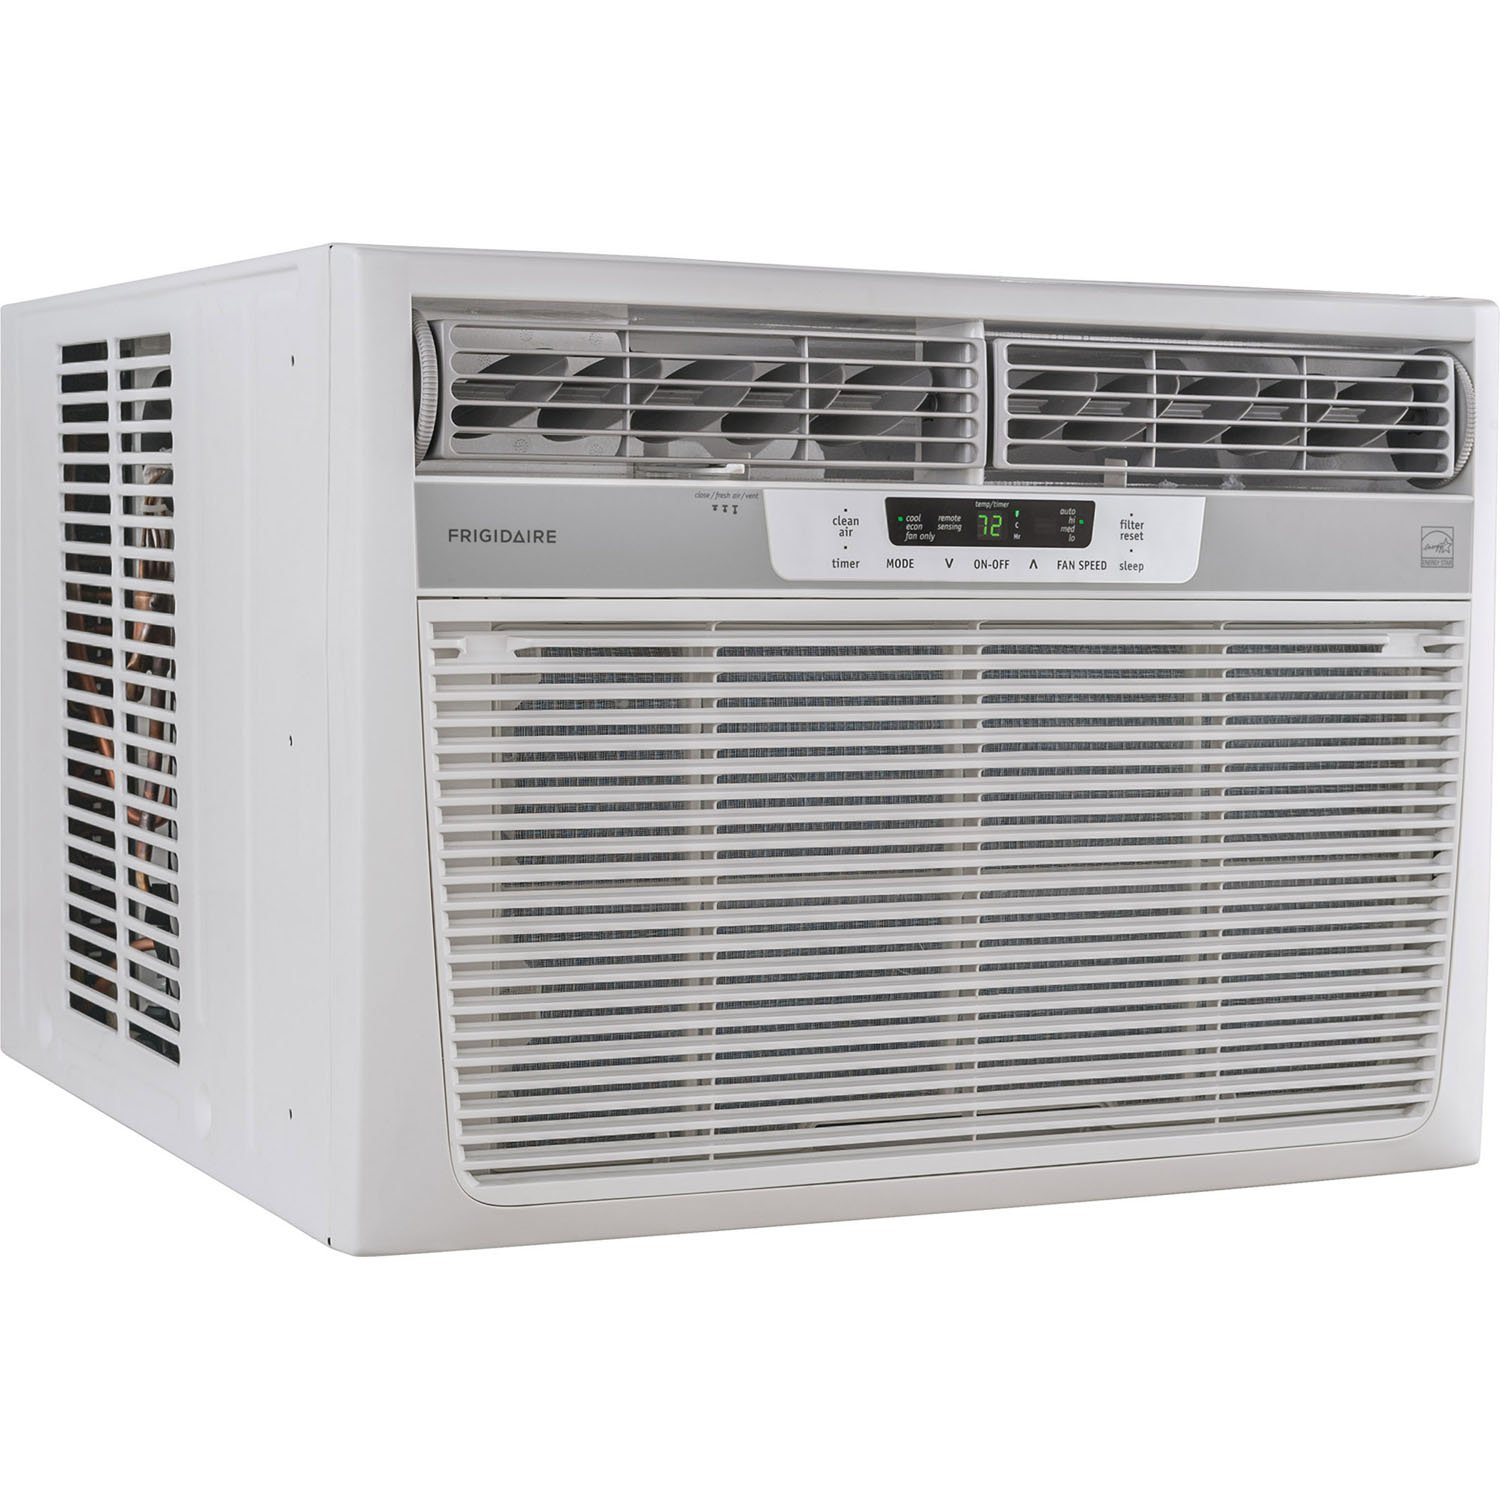 Frigidaire 18000 Btu 230v Window Mounted Median Air Conditioner Temperature Sensing And Control With Remote White Ffre18l3sr 1 Home Kitchen